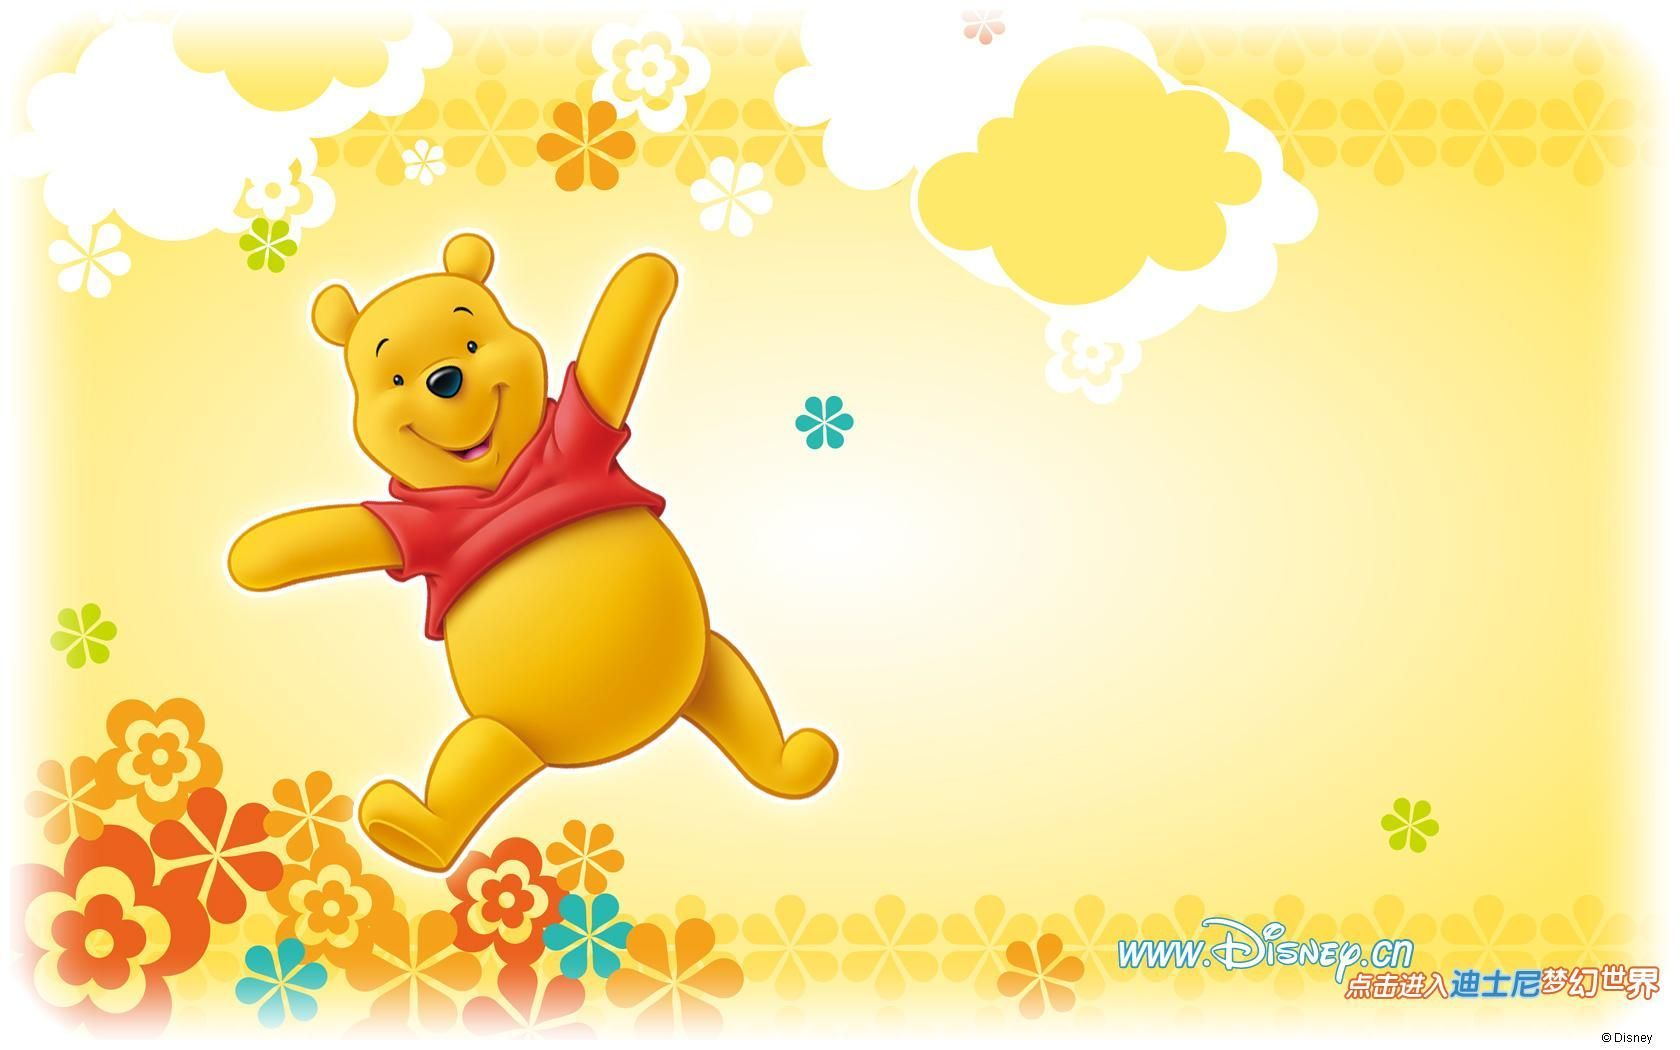 Winnie The Pooh Wallpapers Top Free Winnie The Pooh Backgrounds Wallpaperaccess